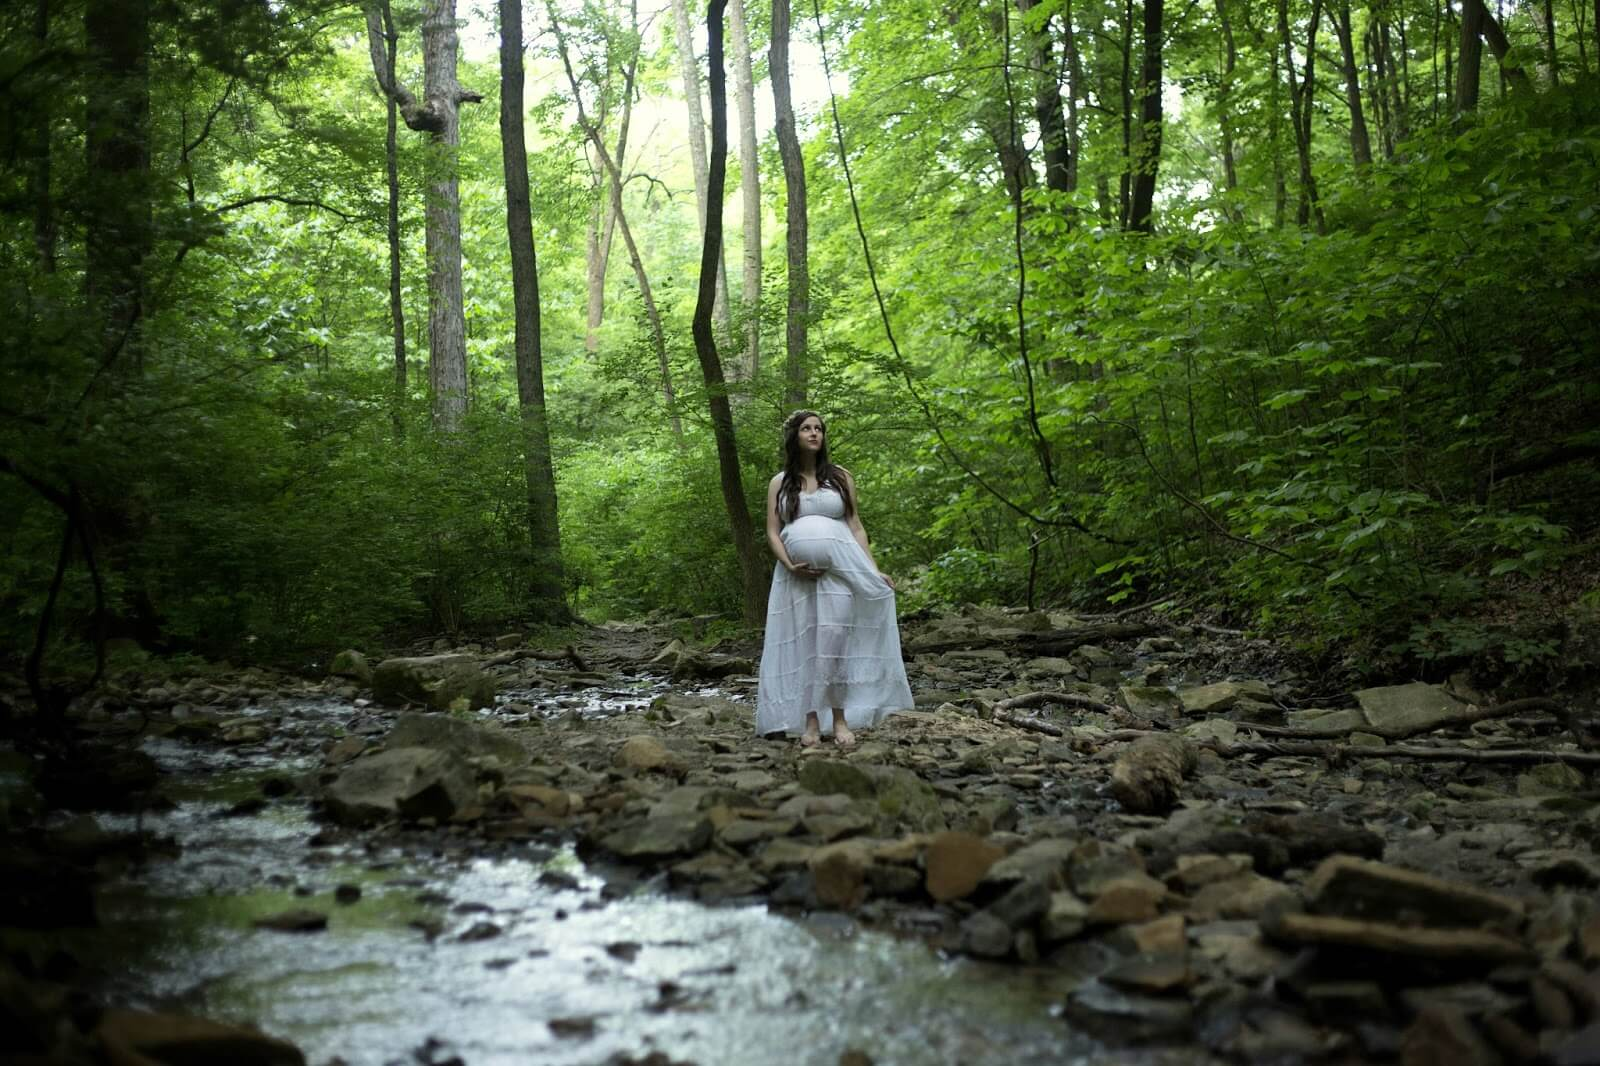 woman in white dress in forest by stream